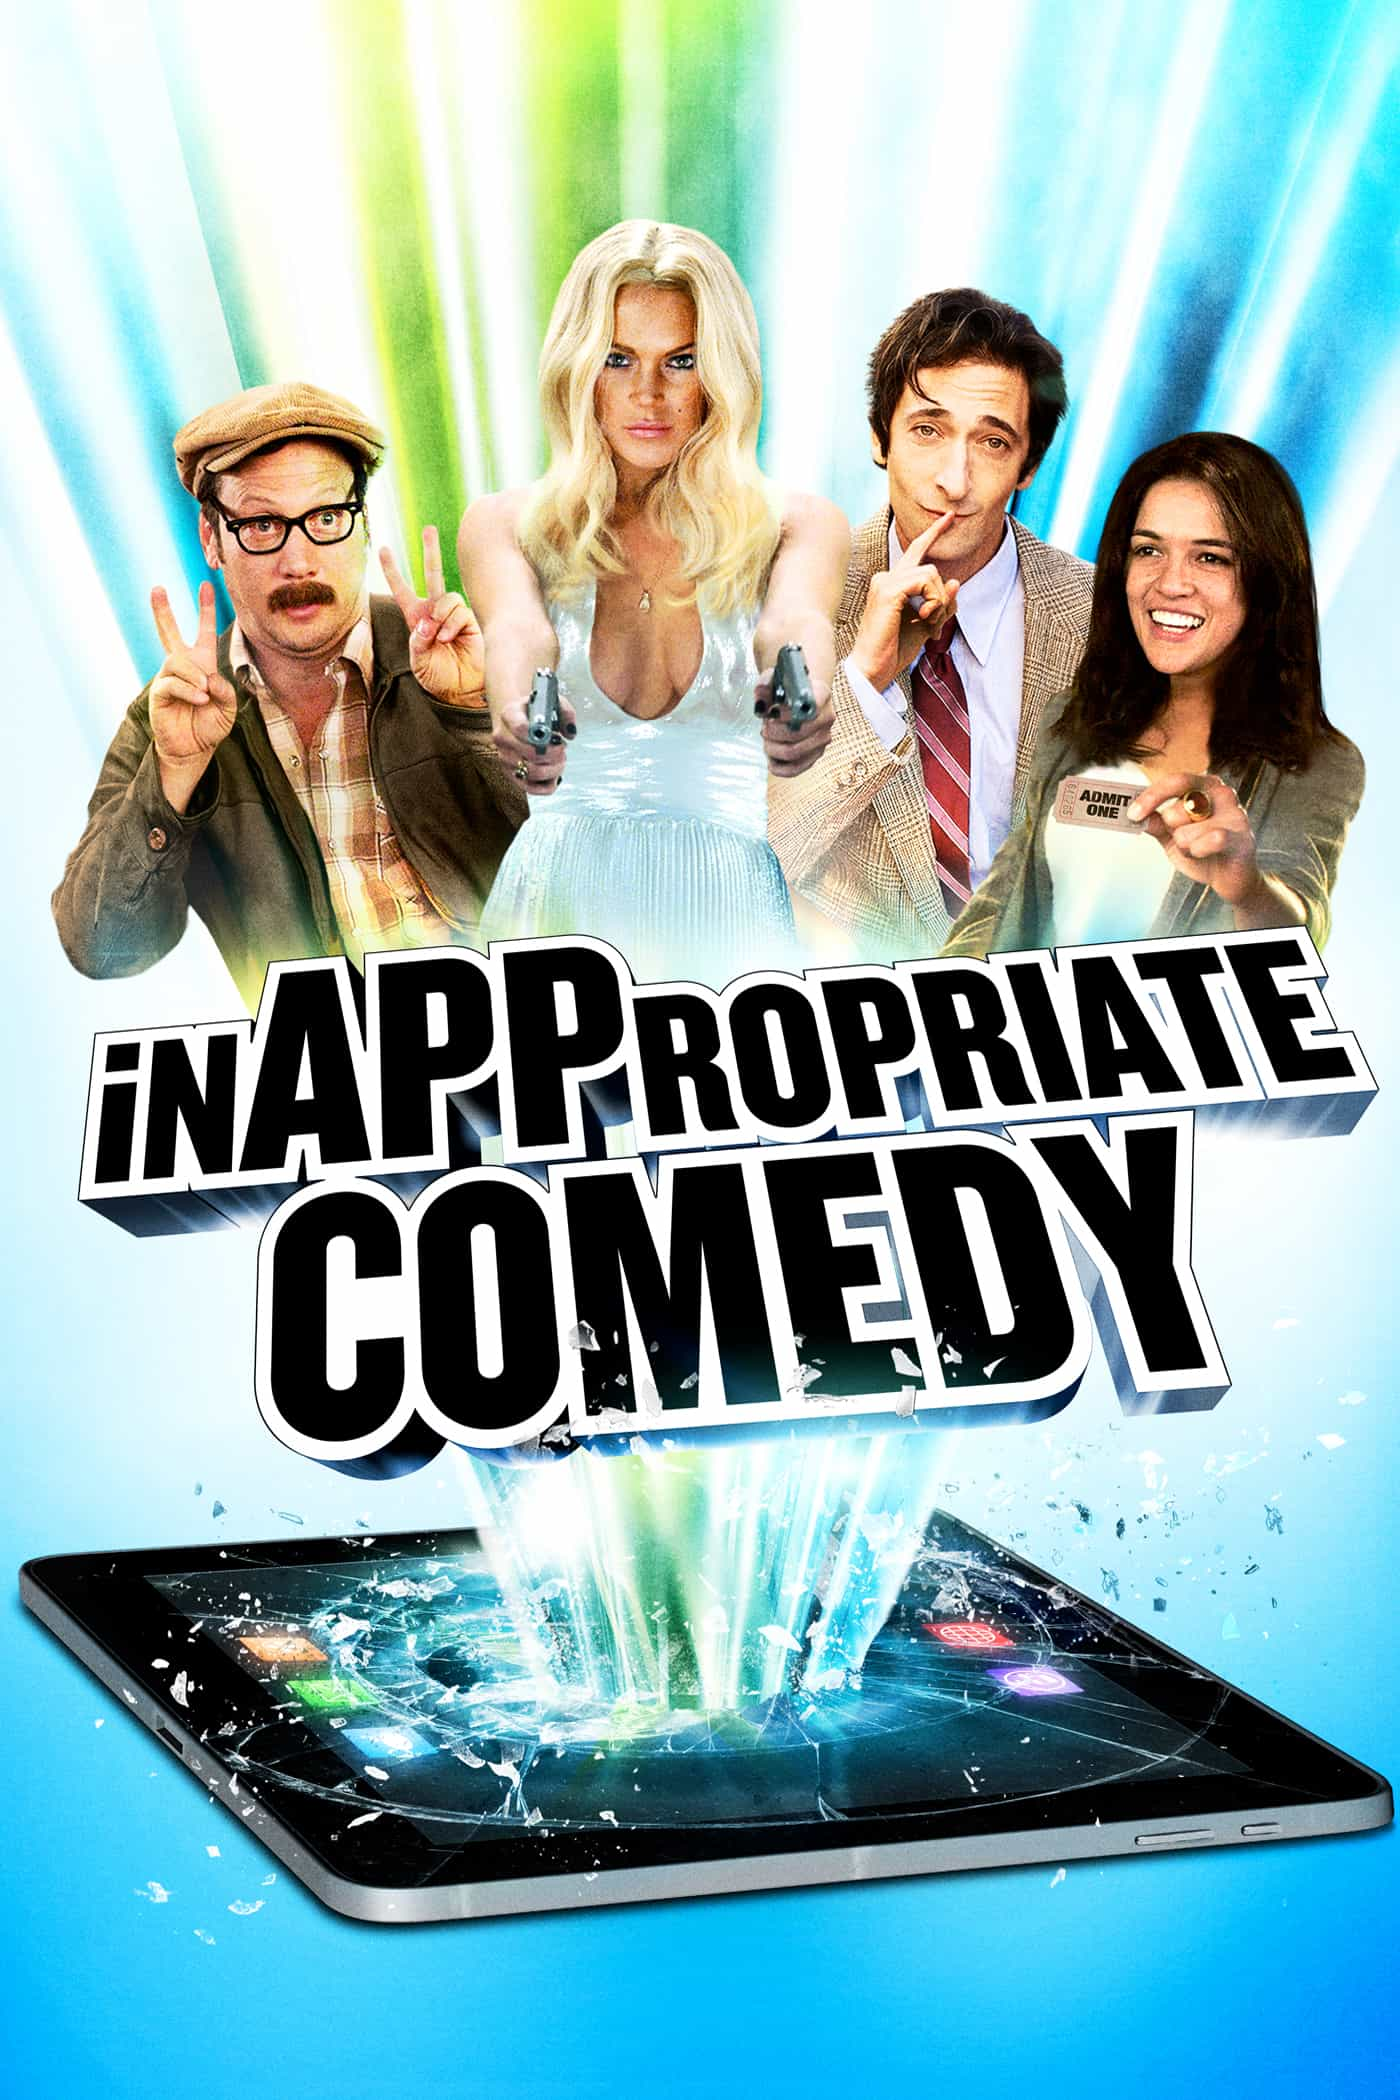 Inappropriate Comedy, 2013